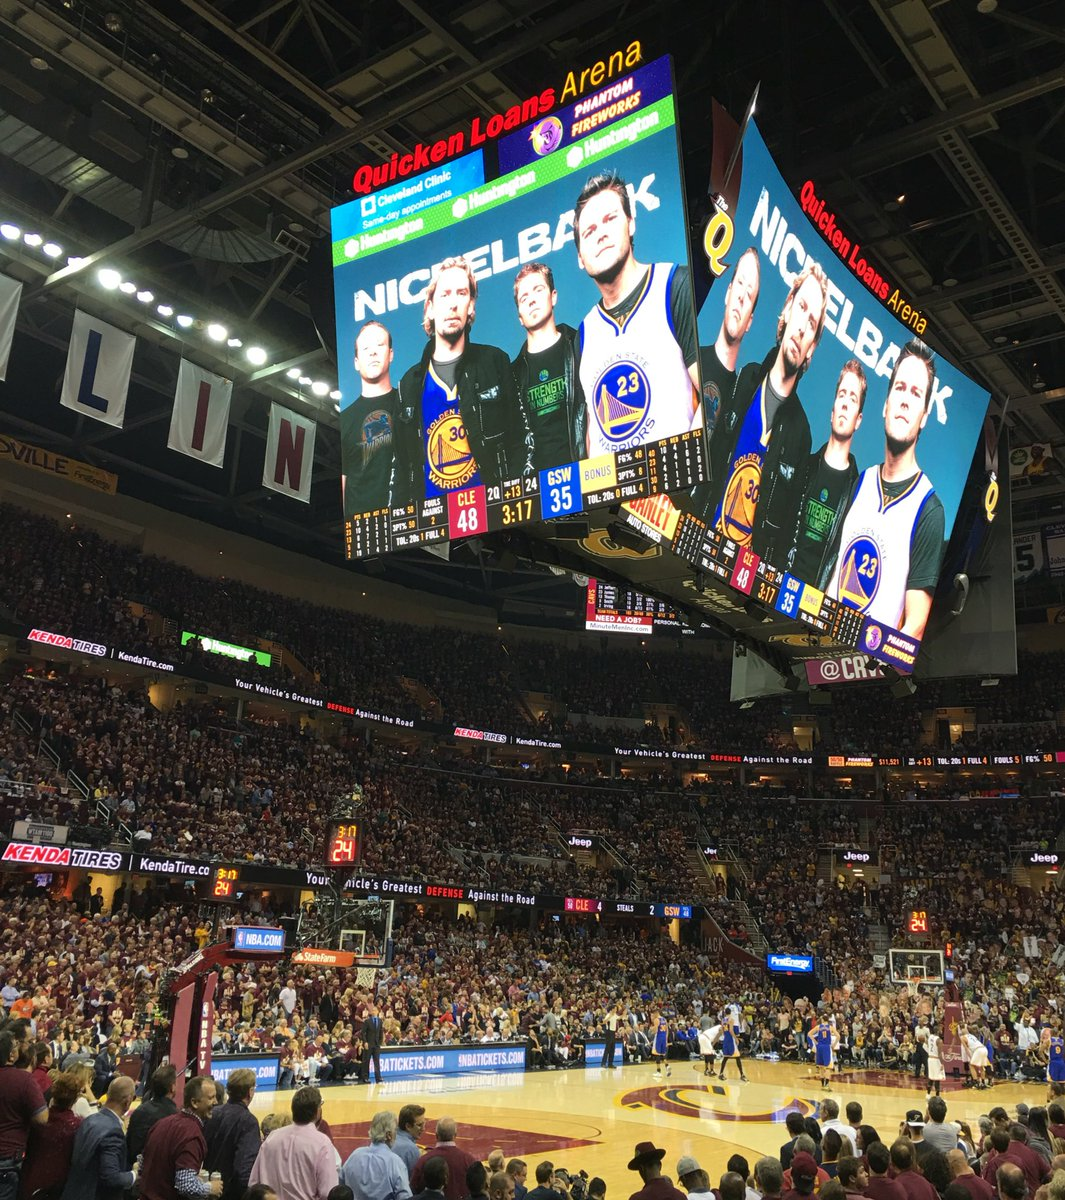 They showed Nickelback on Warriors jerseys on the Jumbotron here in Cleveland and everyone started booing. Amazing. https://t.co/1IfKK7Bsek